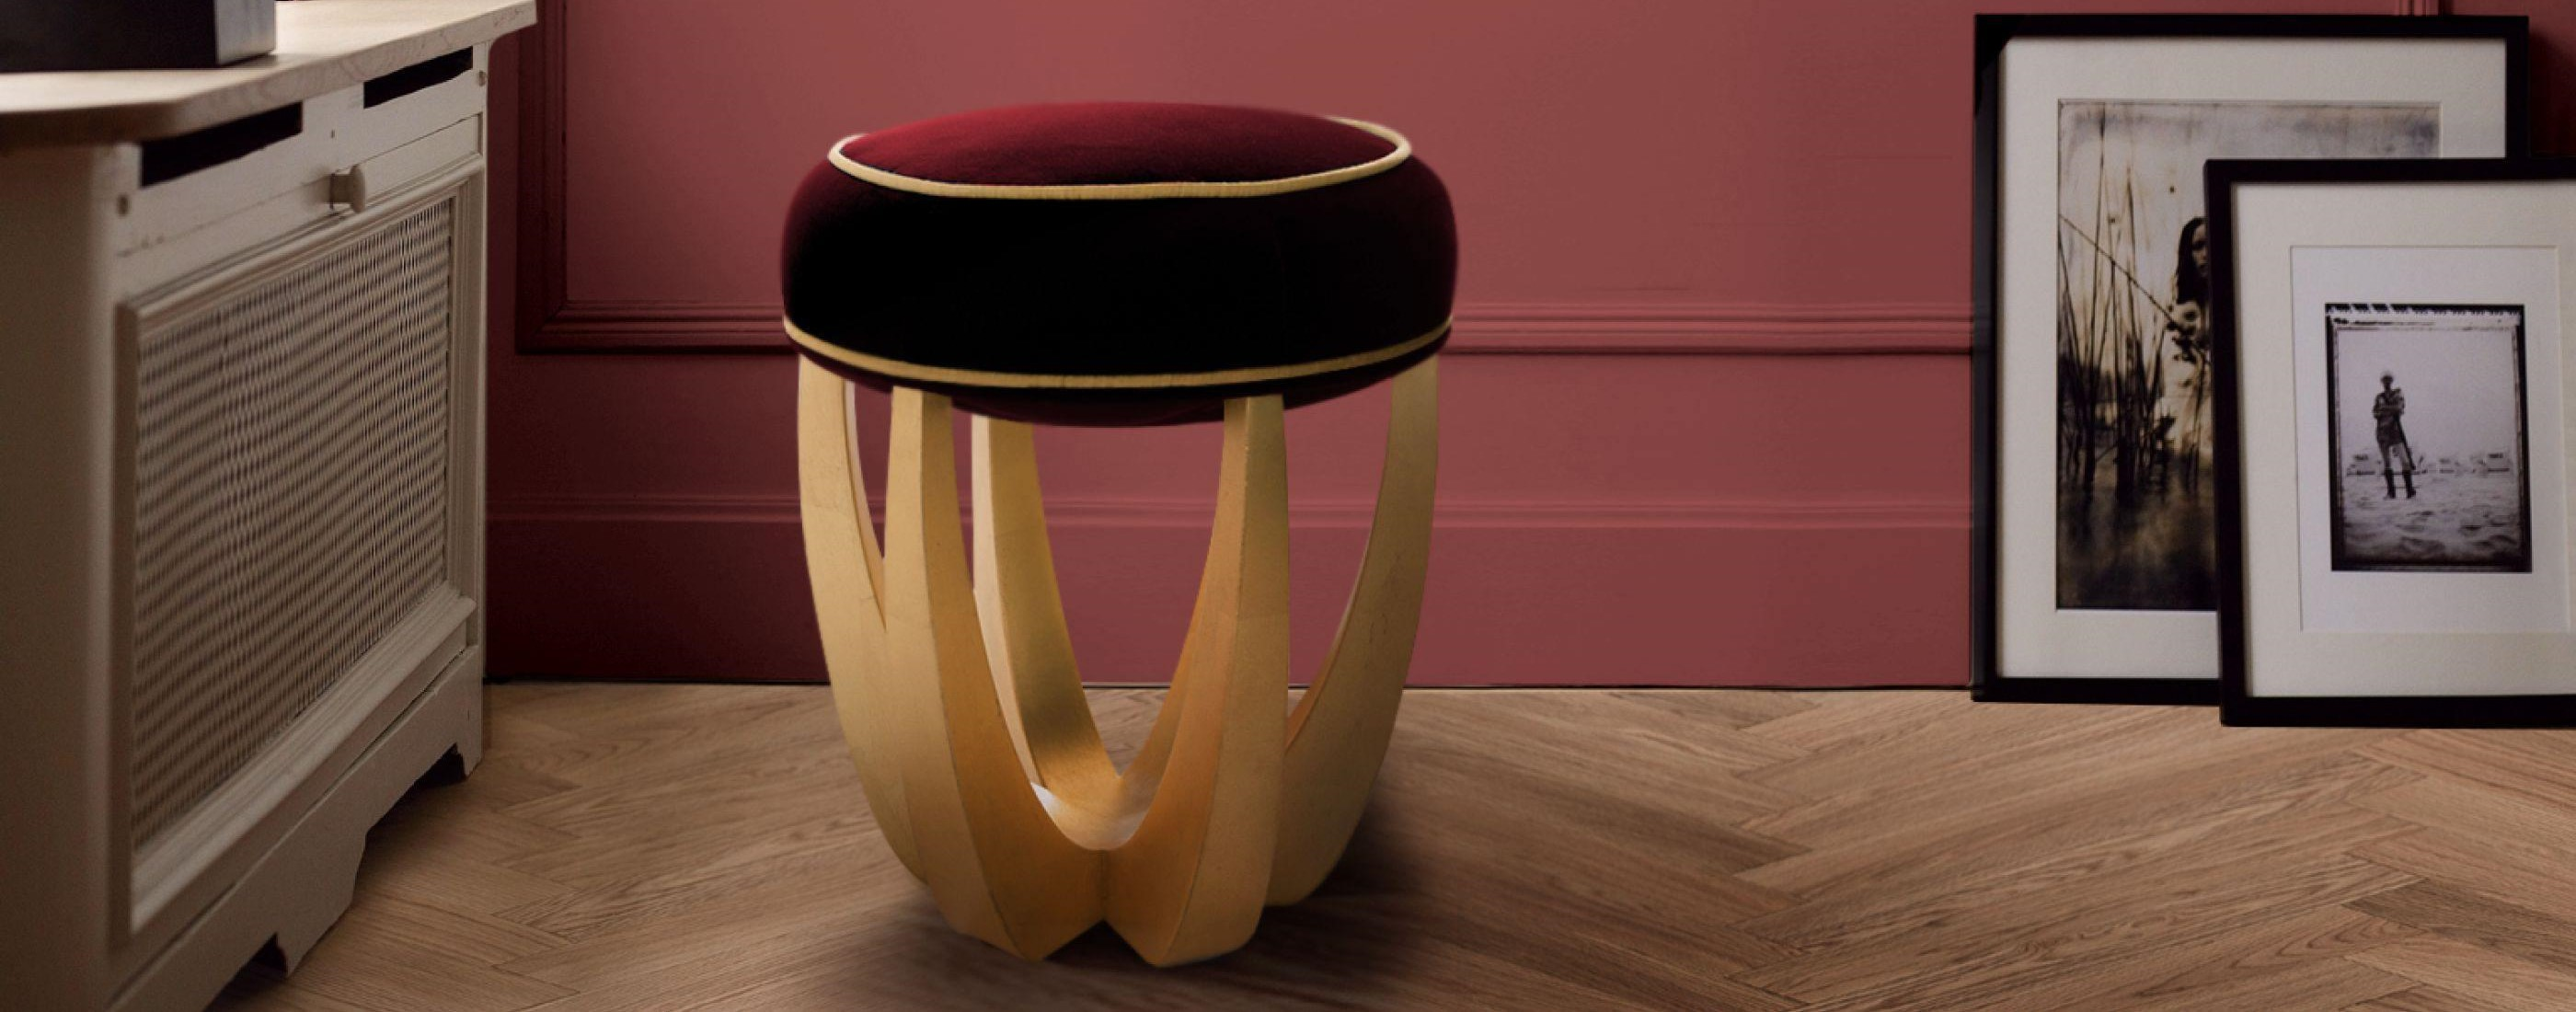 Betty Stool in Living Room